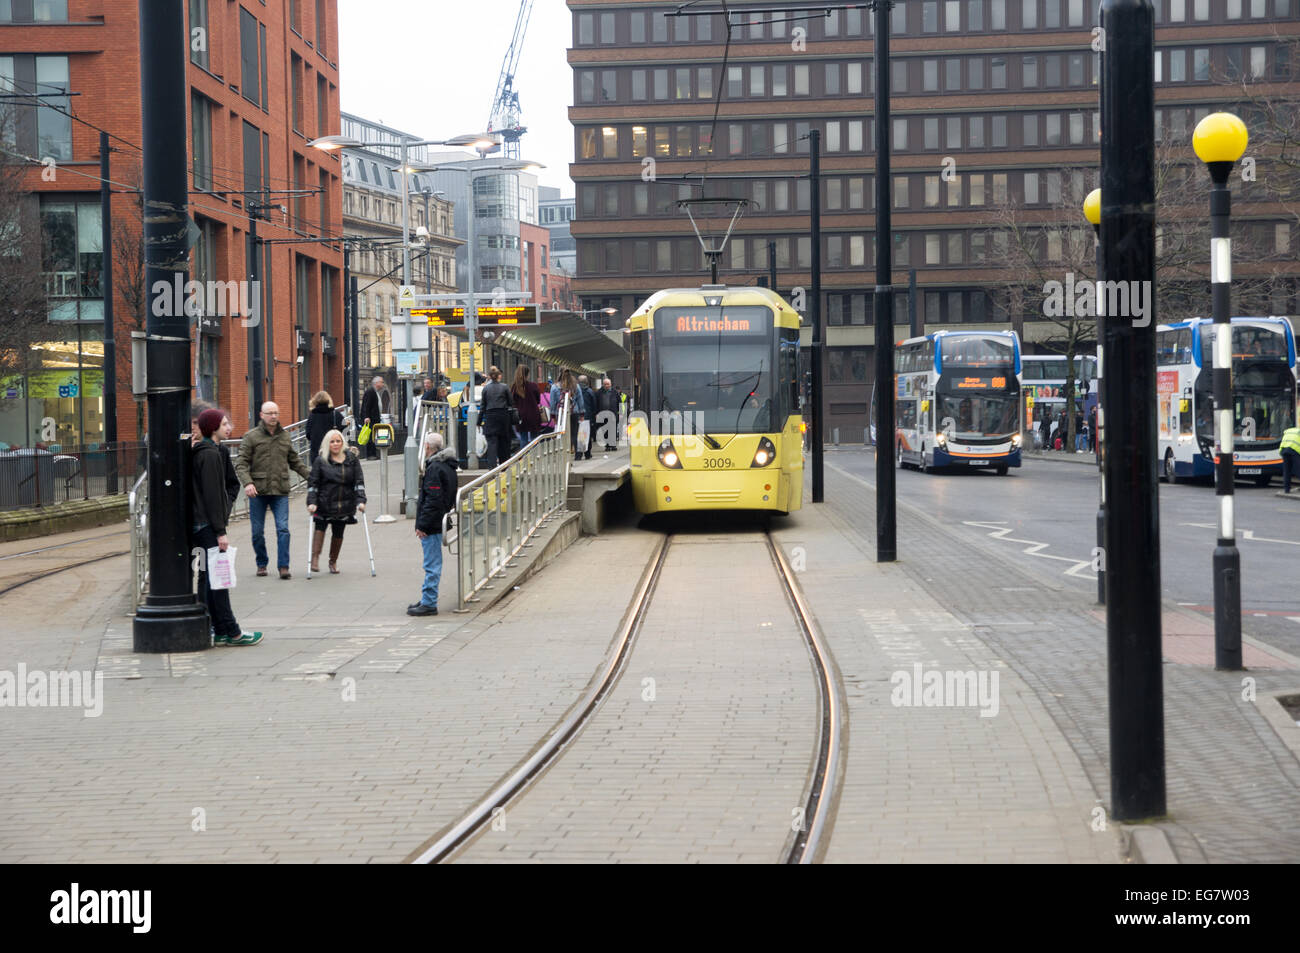 February 2015, Metrolink Tram services are good in Piccalilli Gardens - Stock Image